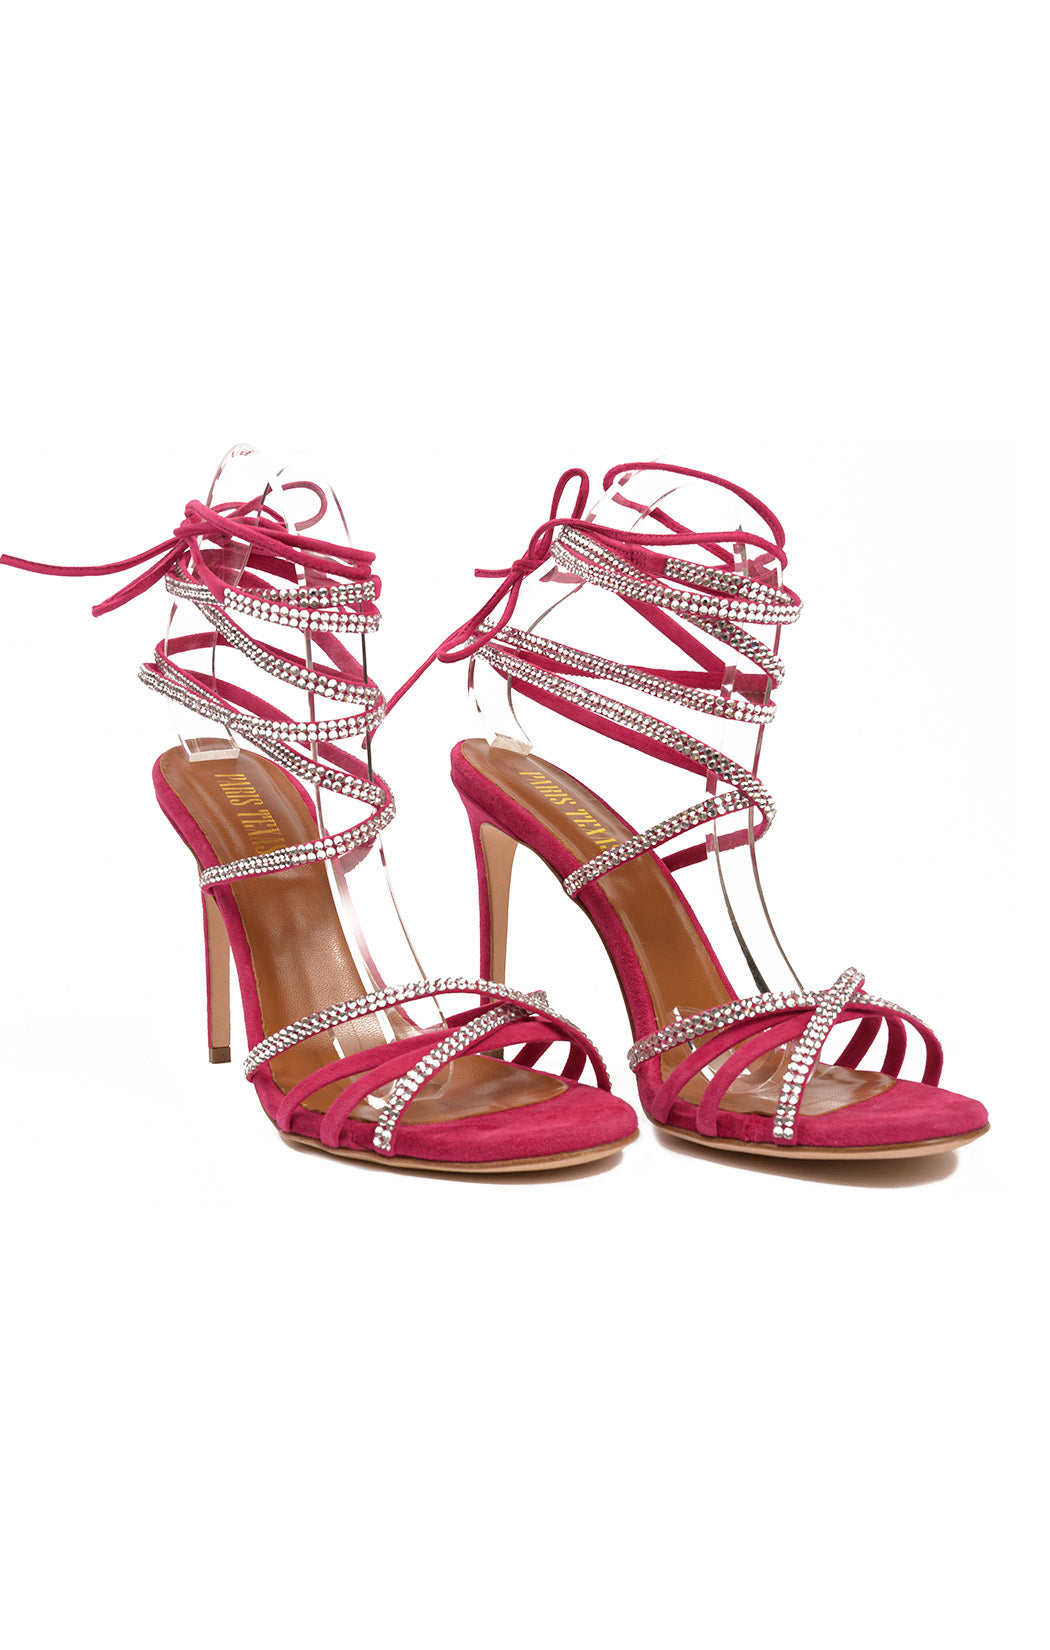 "Pink with rhinestones multi ankle strap sandal with 5"" heel"